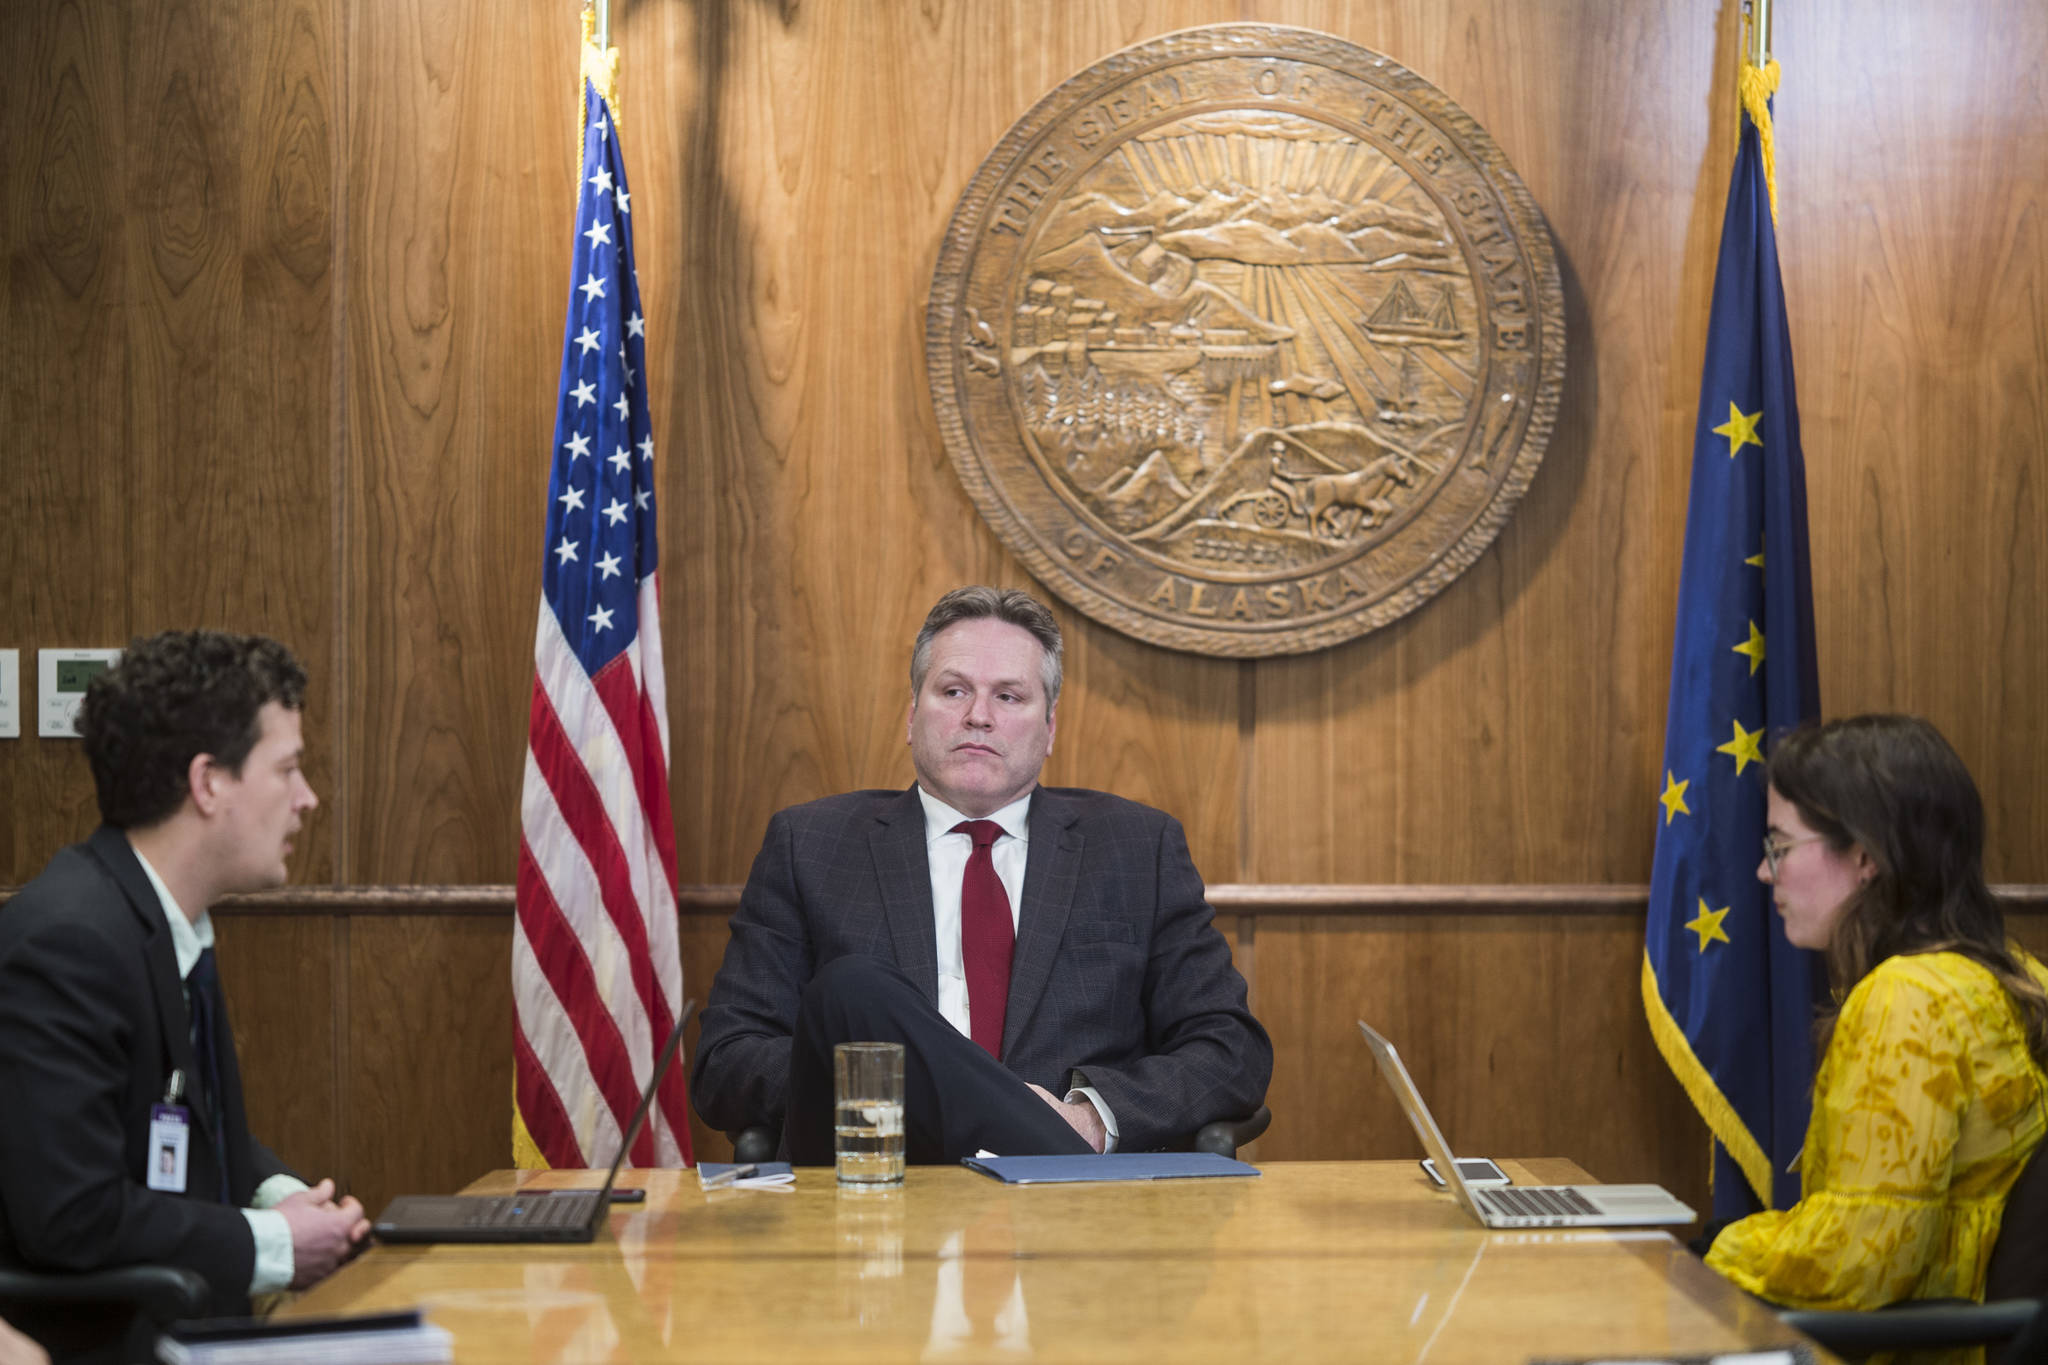 Juneau Empire reporters Kevin Baird, left, and Mollie Barnes interview Gov. Mike Dunleavy at the Capitol on Tuesday, Feb. 26, 2019. (Michael Penn | Juneau Empire)